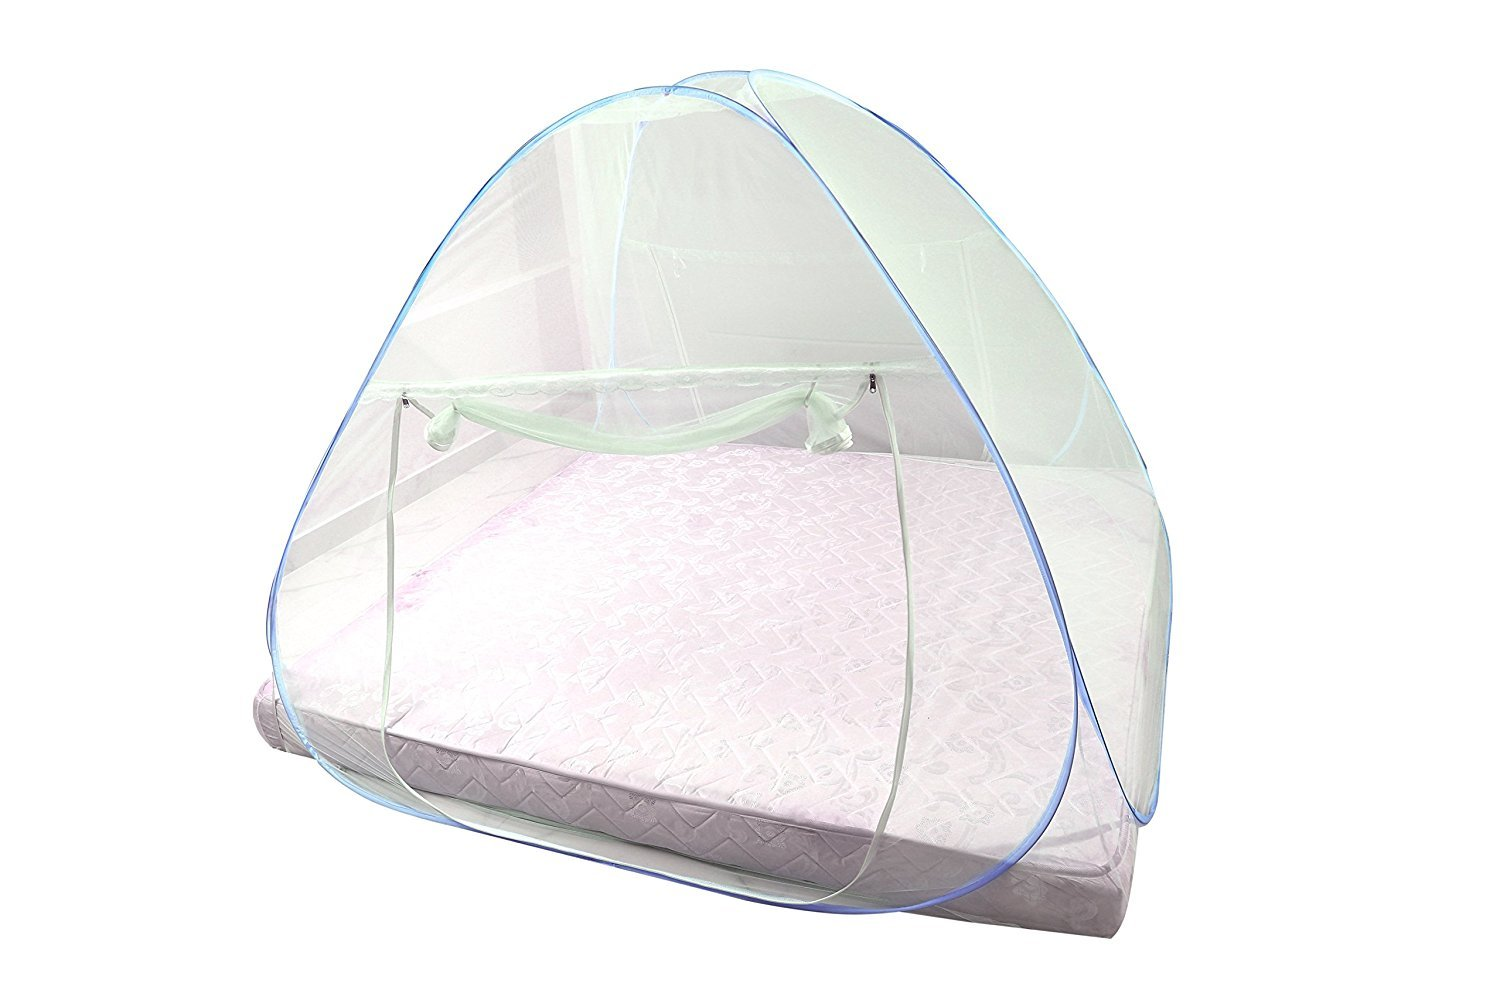 V Make Foldable Mosquito Net for King Size Double Bed (Blue) product image